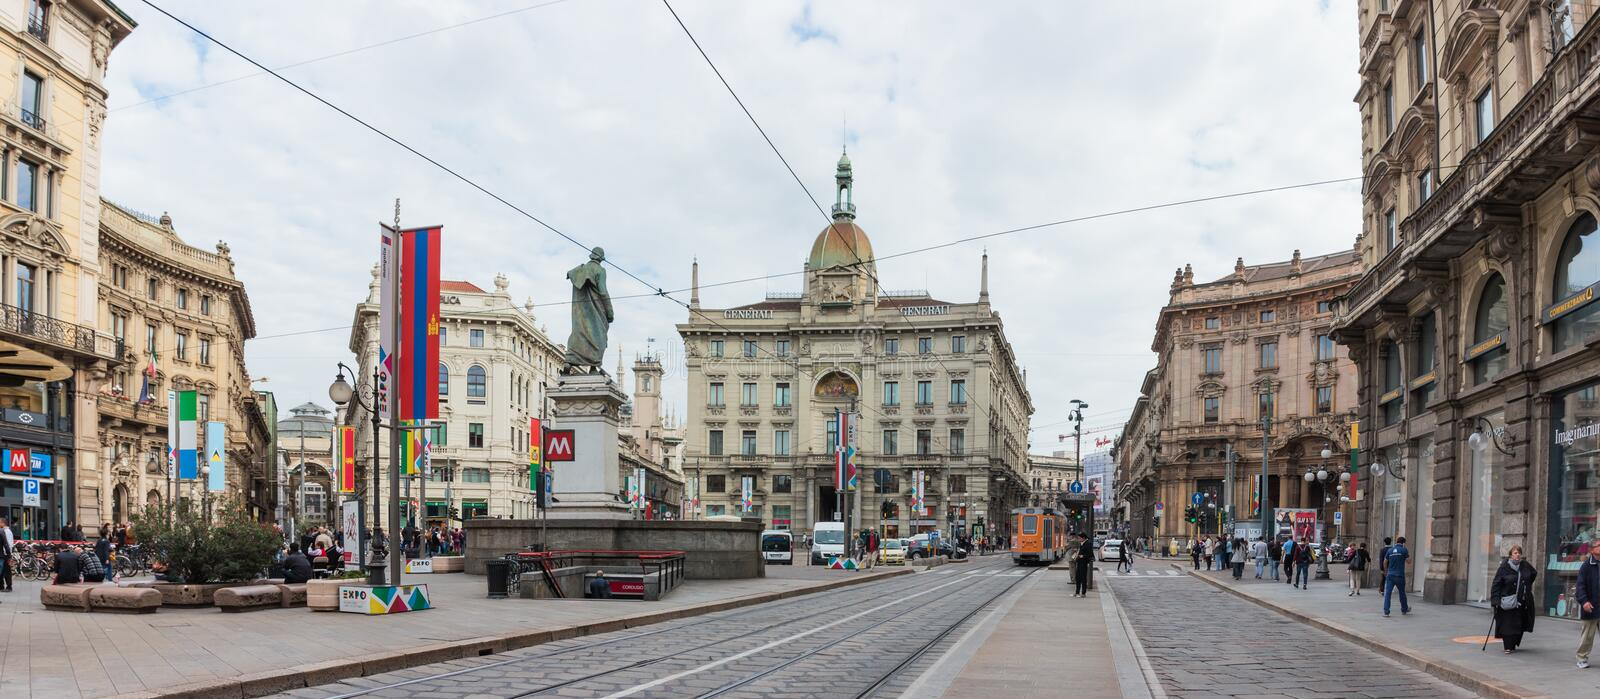 Peoples in decorated Dante Avenue and Piazza Cordusio in Milan. Milan, Italy - September 29, 2015 : The daily life of the city of Milan. Numerous passers-by and stock image